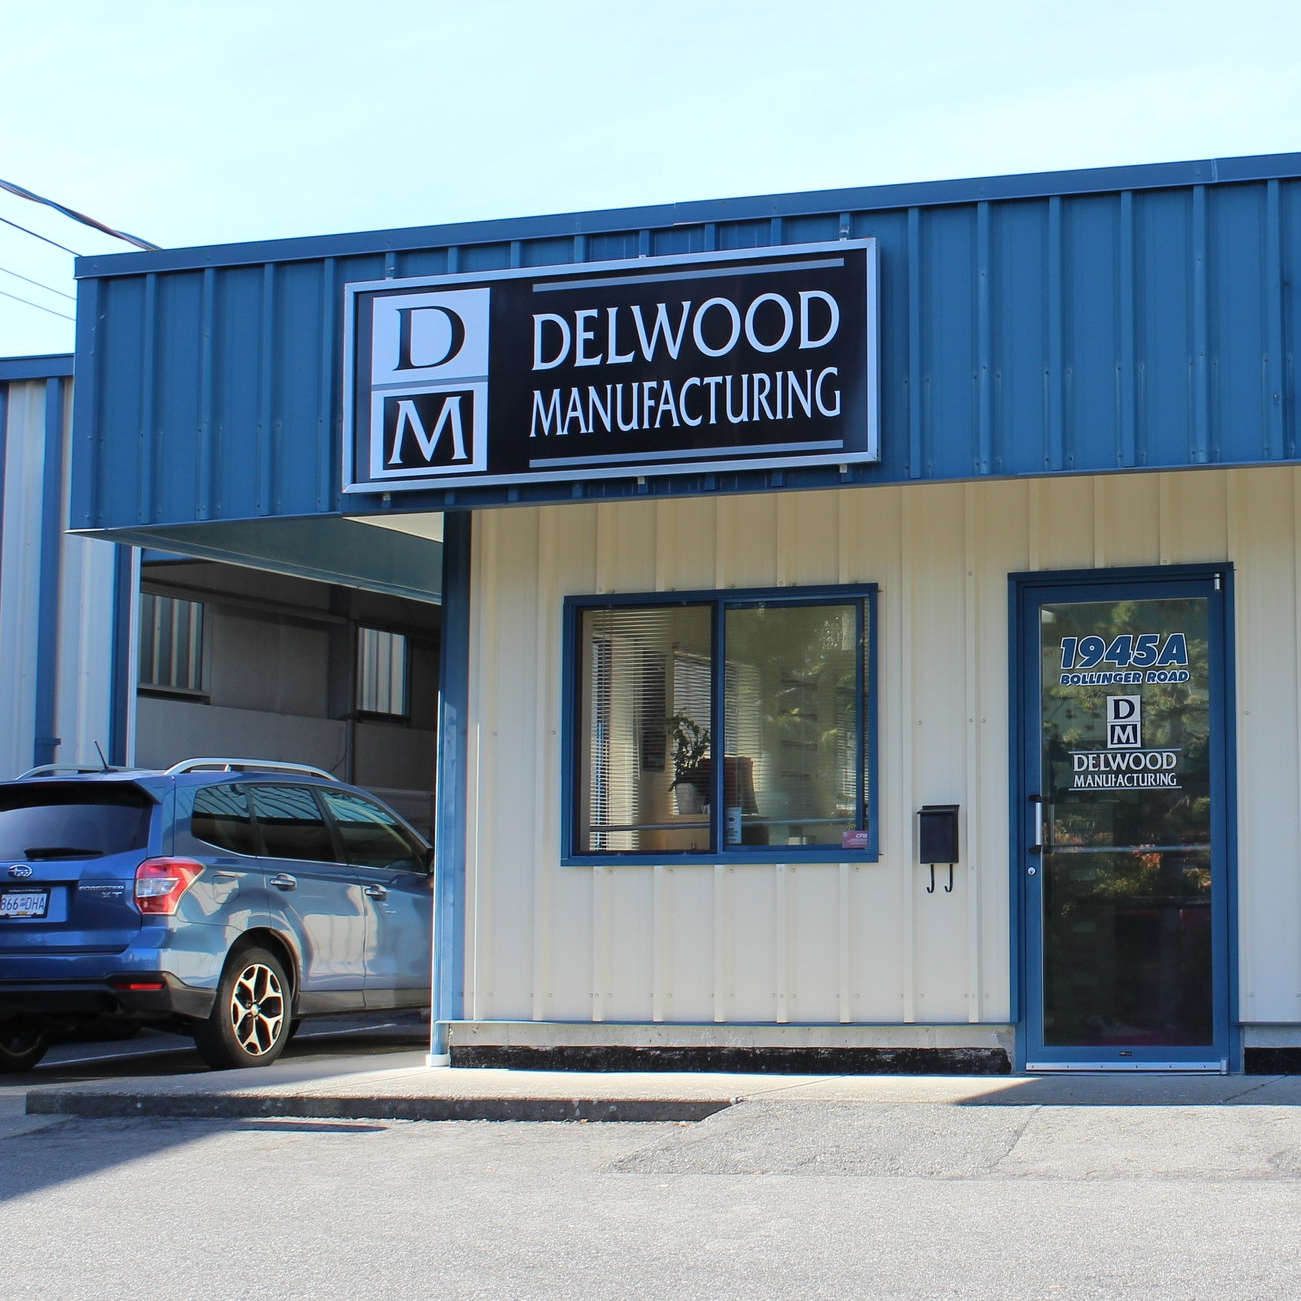 delwood office front.JPG